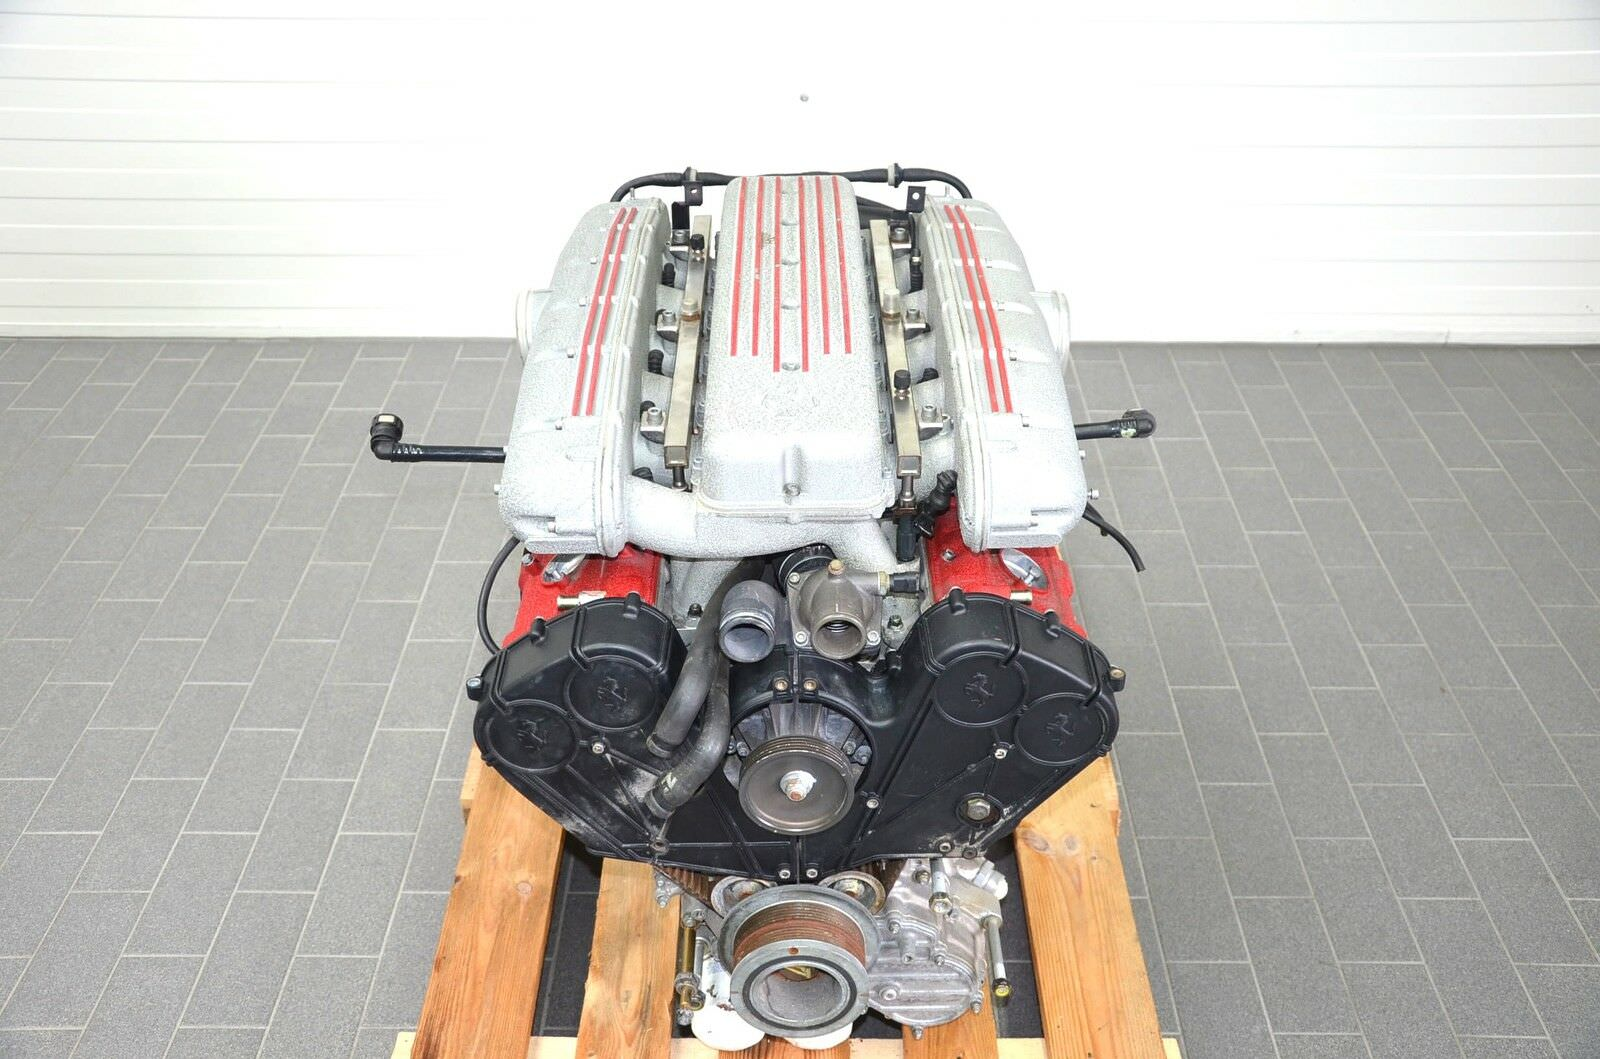 Ferrari 575M V12 Engine